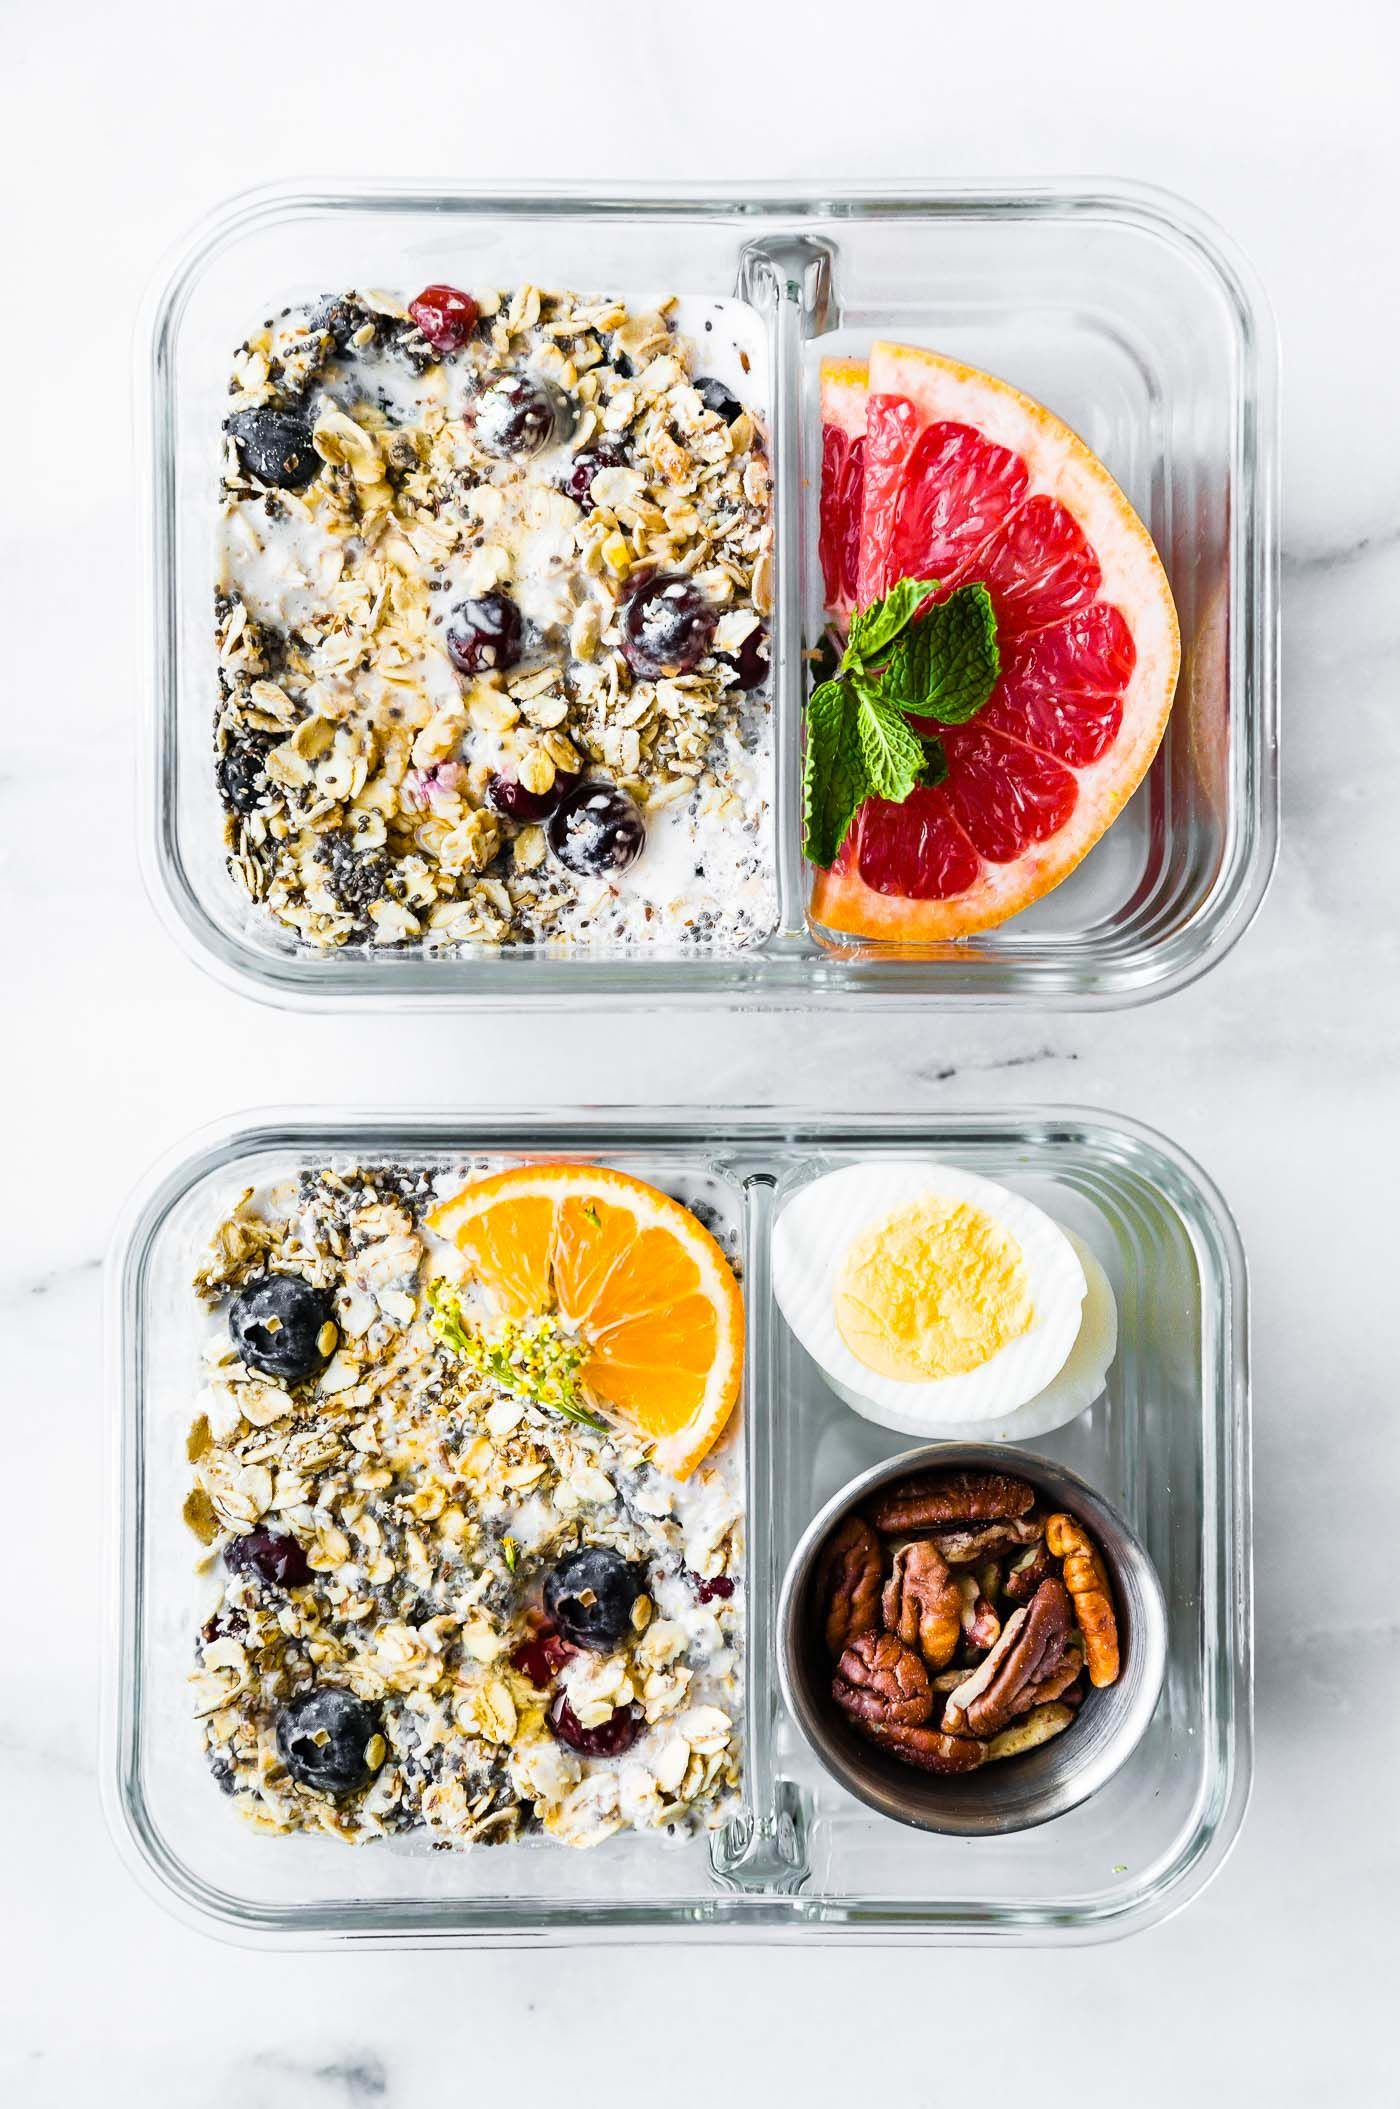 Superfood Overnight Oatmeal Healthy Meal Prep Breakfast Recipe